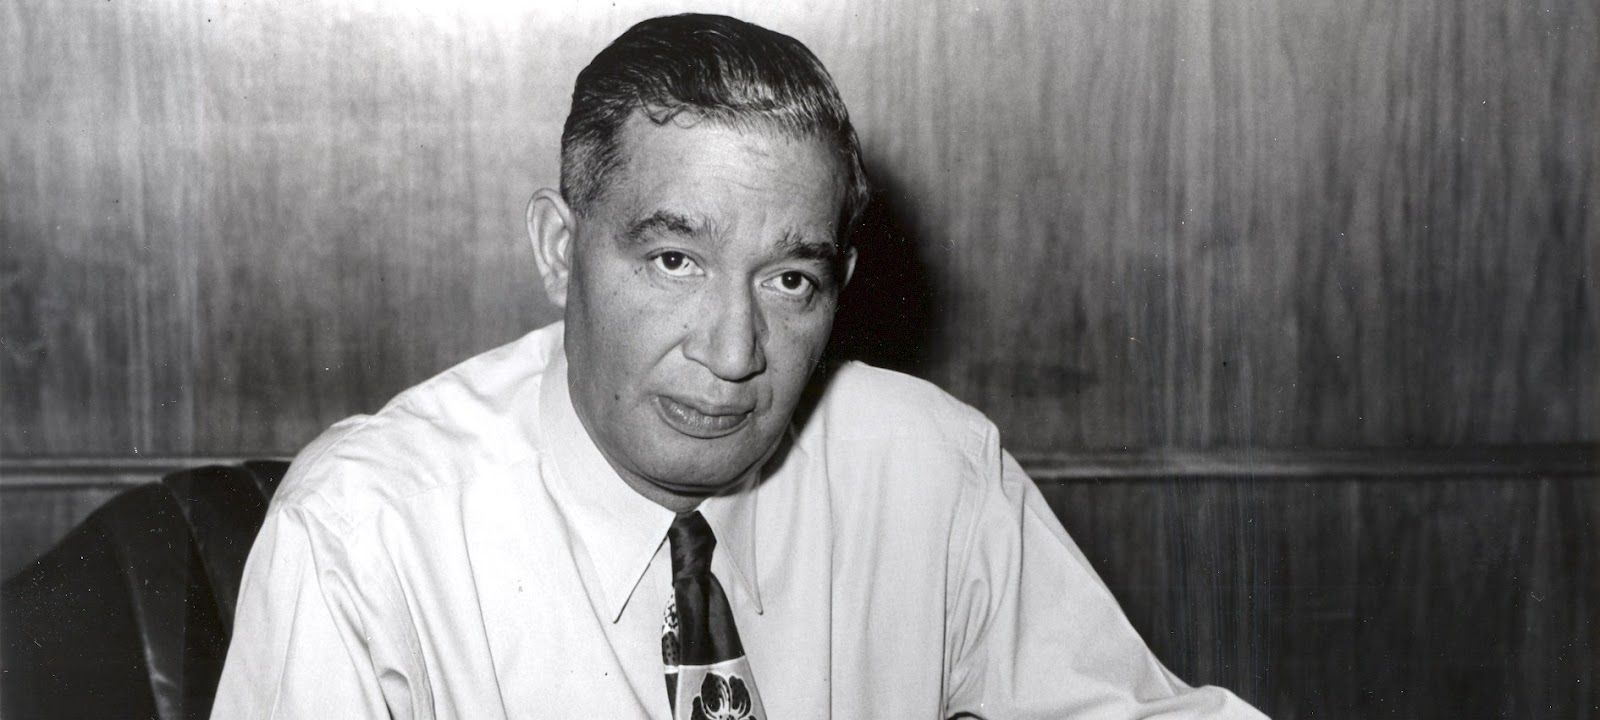 Frederick McKinley Jones (18931961) was born in